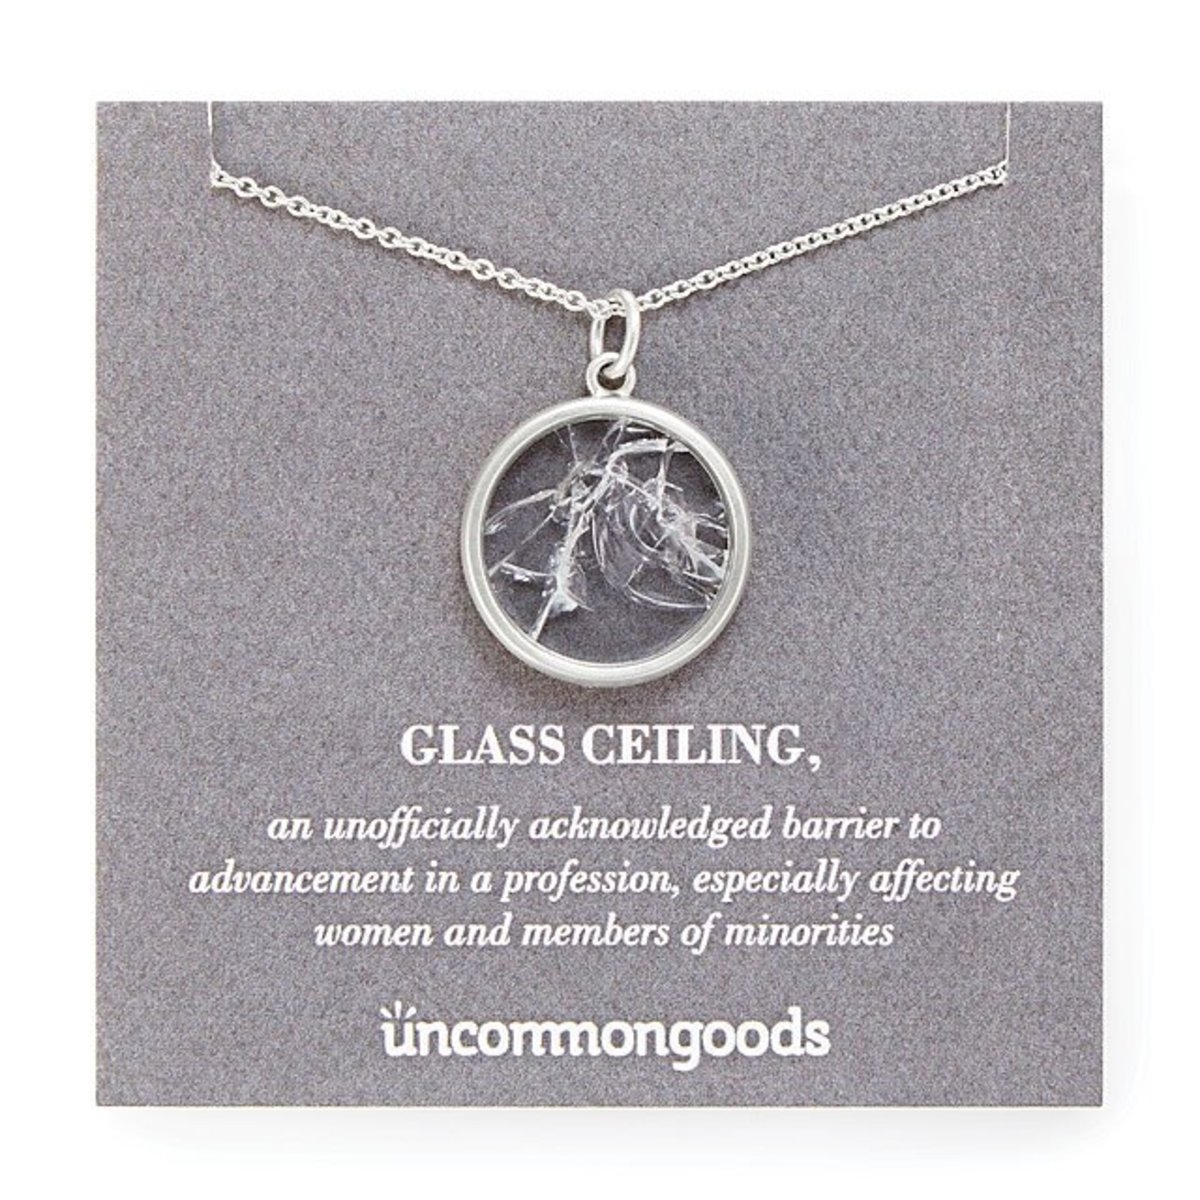 Glass ceiling necklace for liberal, feminist moms.